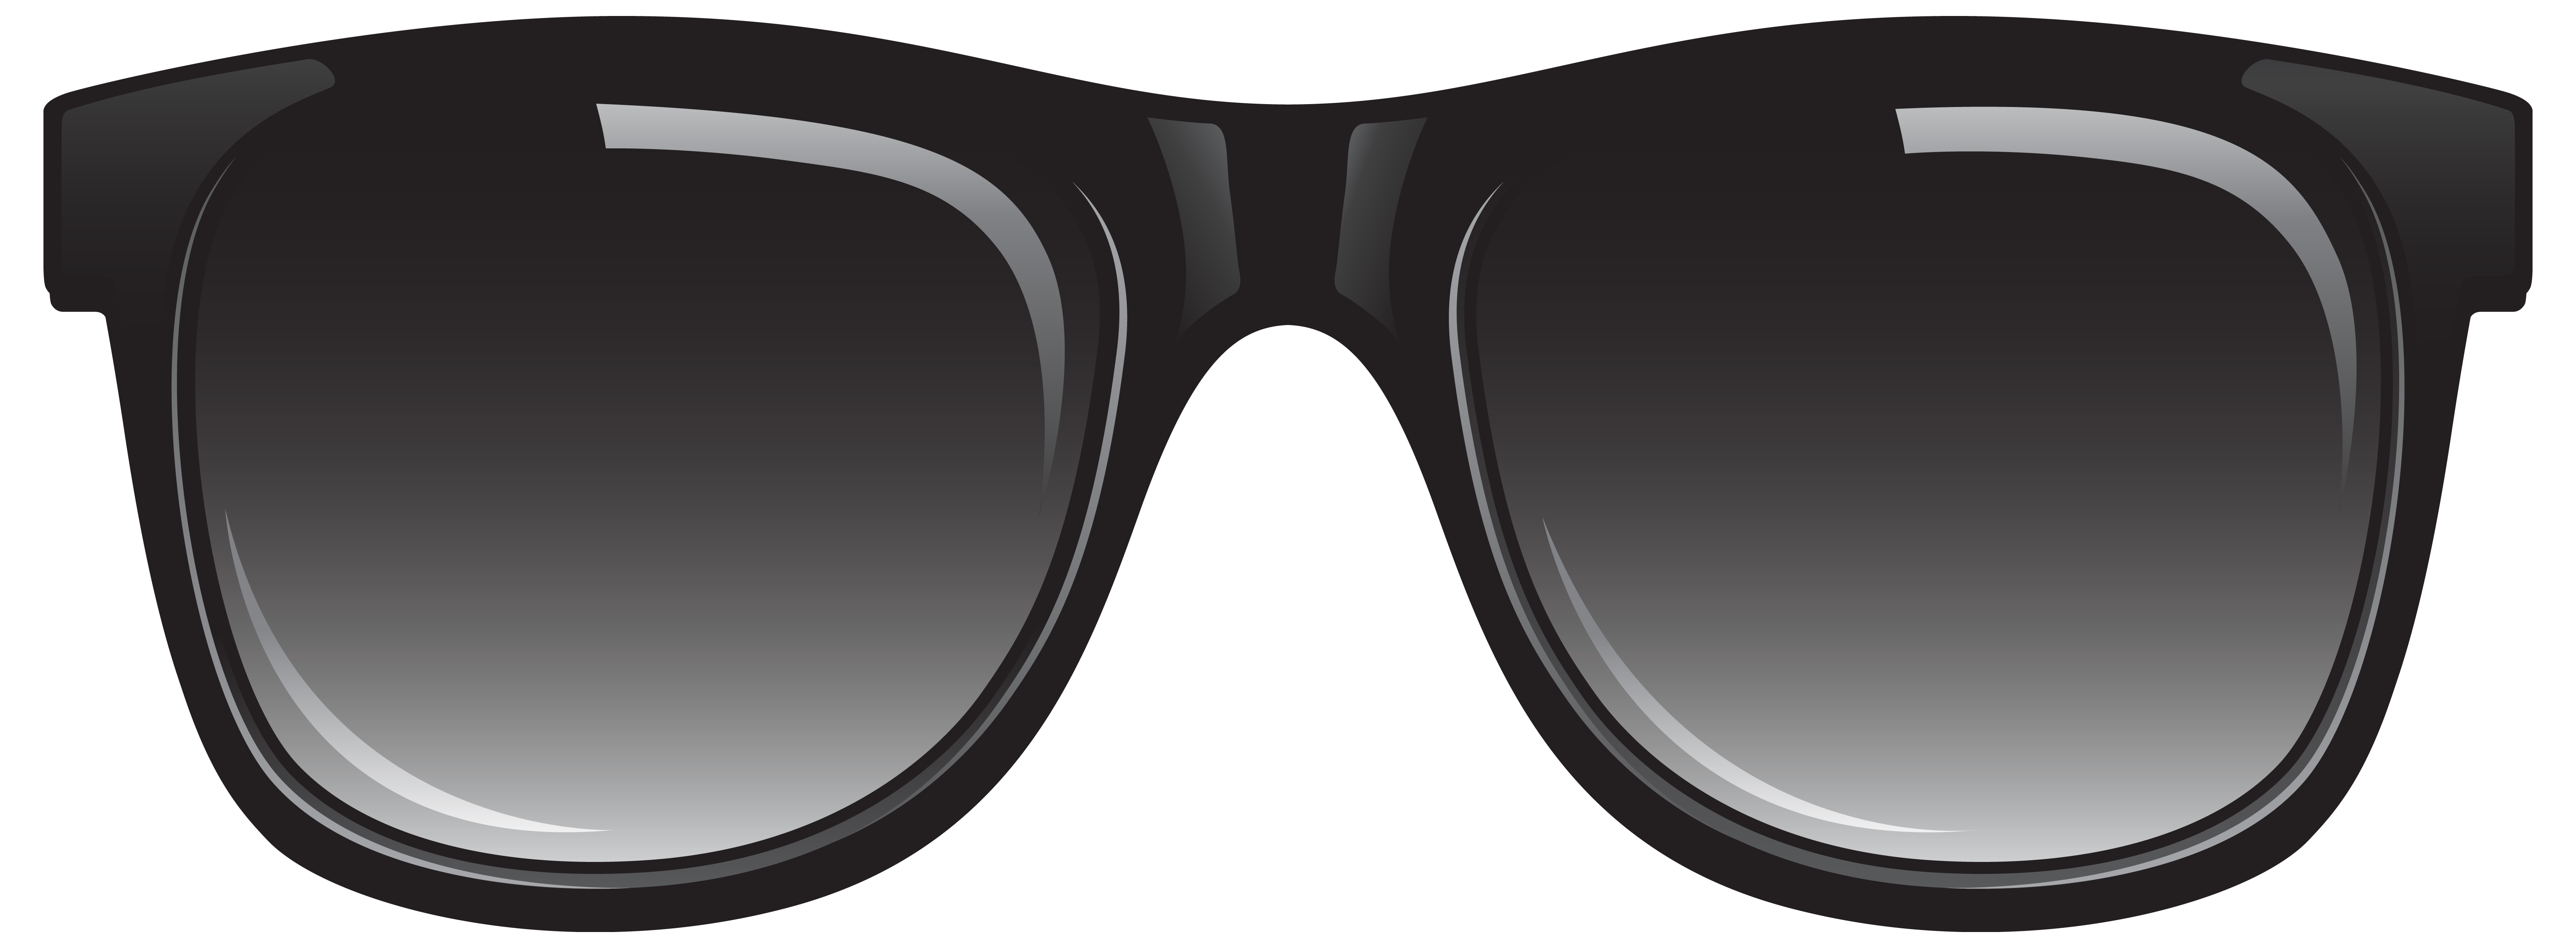 Sunglass clipart optical frame. Black sunglasses png image